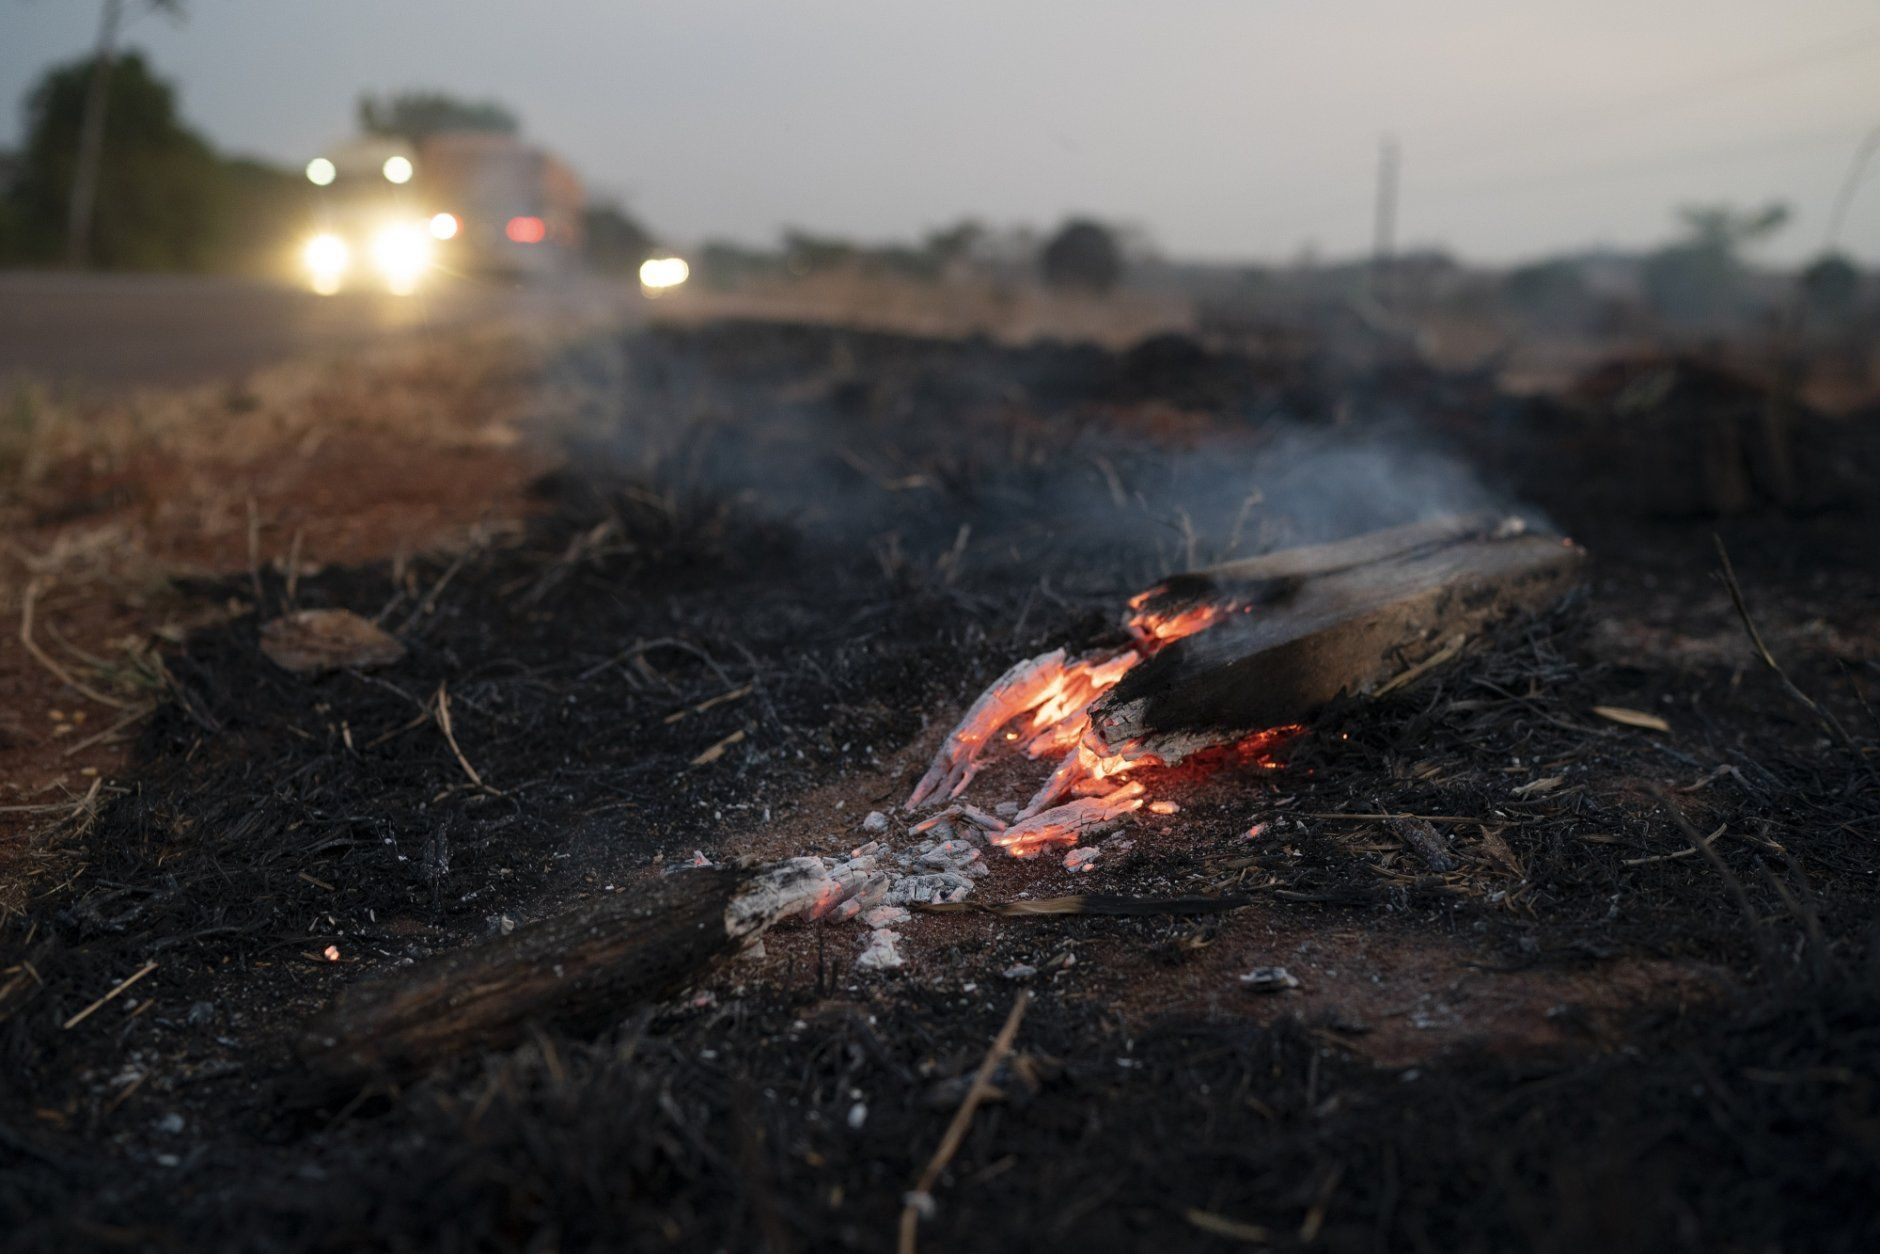 Embers from a wildfire smolder along BR 163 highway in the Nova Santa Helena municipality, in the state of Mato Grosso, Brazil, Friday, Aug. 23, 2019. Under increasing international pressure to contain fires sweeping parts of the Amazon, Brazilian President Jair Bolsonaro on Friday authorized use of the military to battle the massive blazes. (AP Photo/Leo Correa)